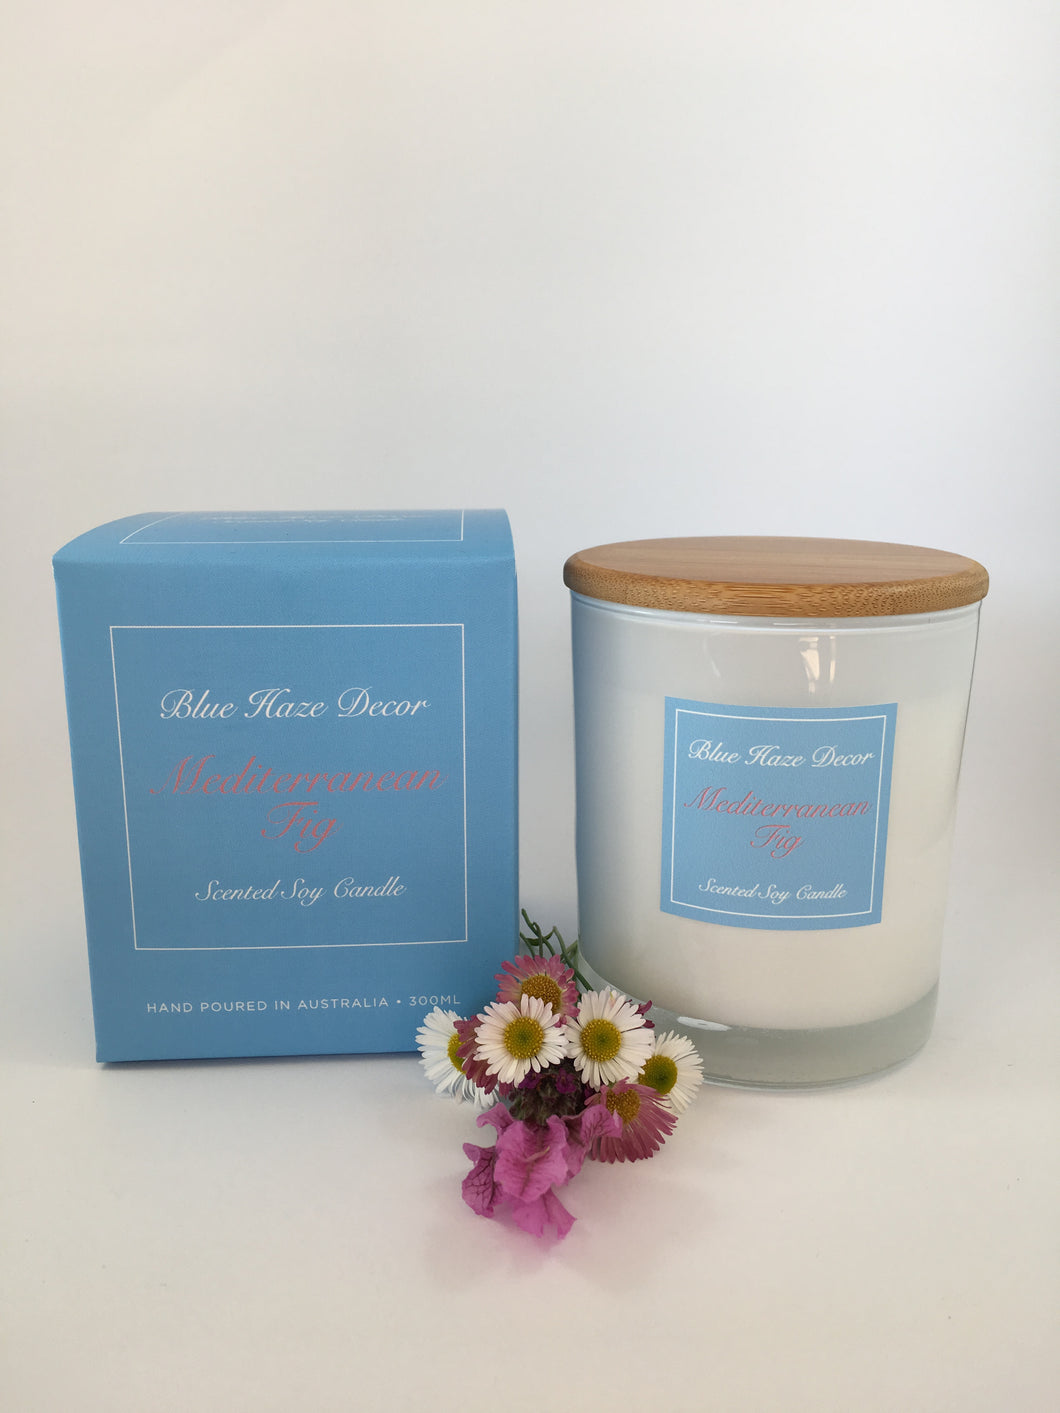 Mediterranean Fig Candle